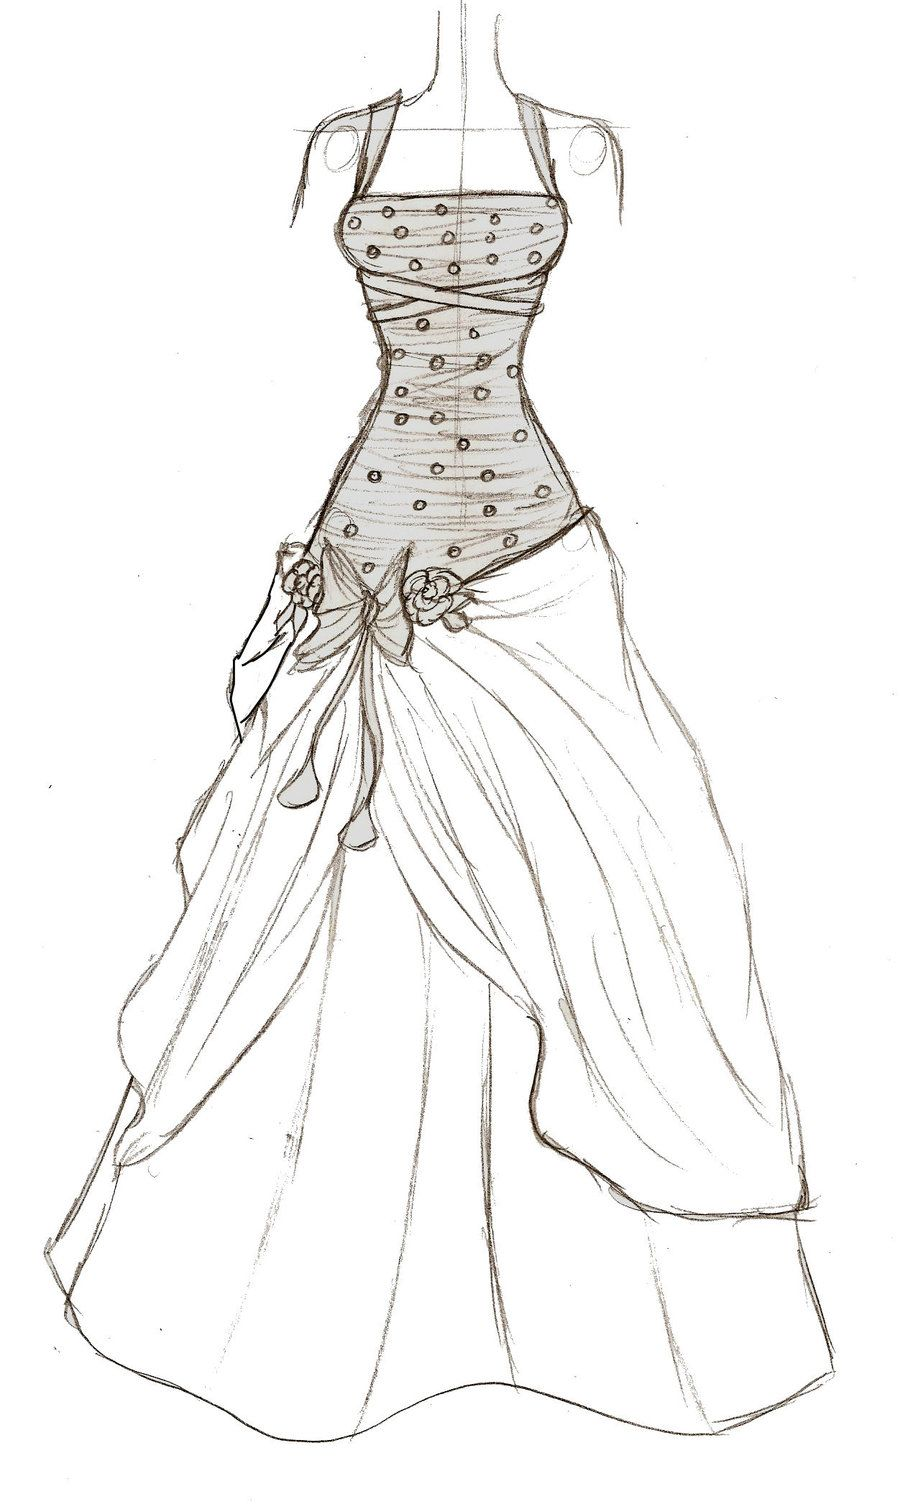 1782e3d8e71c5 dress designs drawings - Google Search